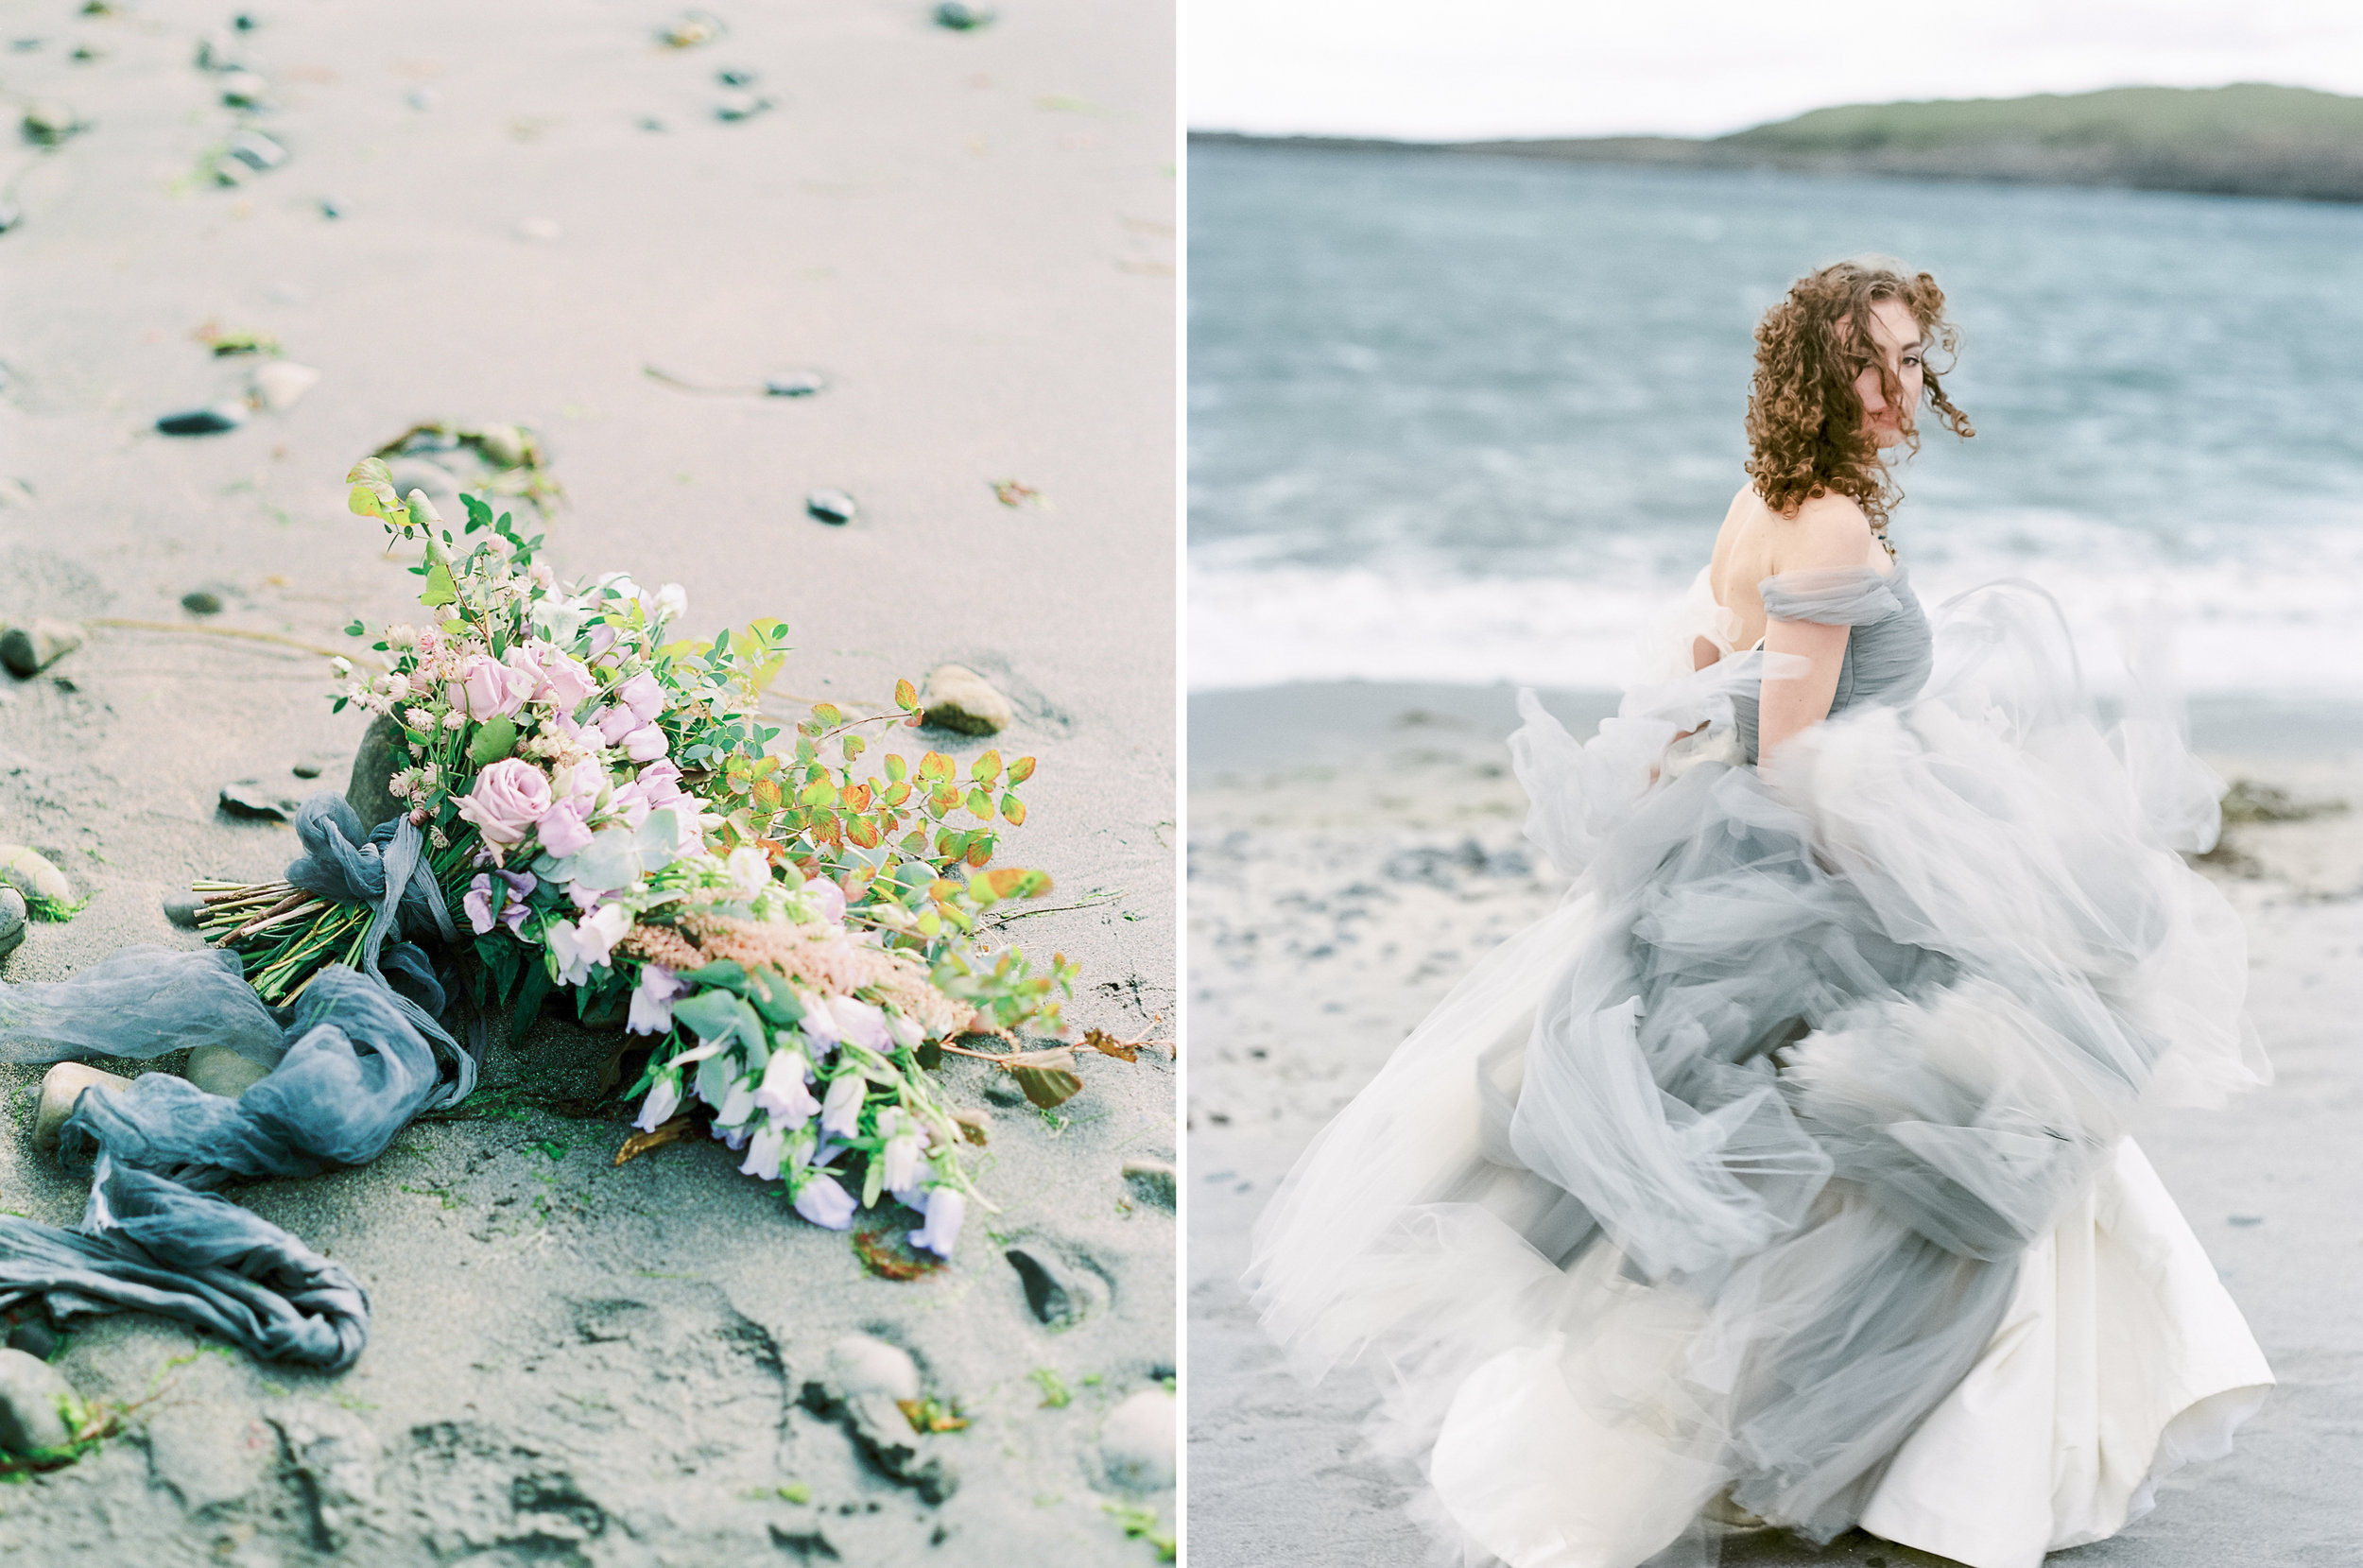 Chen-Sands-Film-Photography-Portraits-Bride-Beauty-Ireland-Diptych-2.jpg